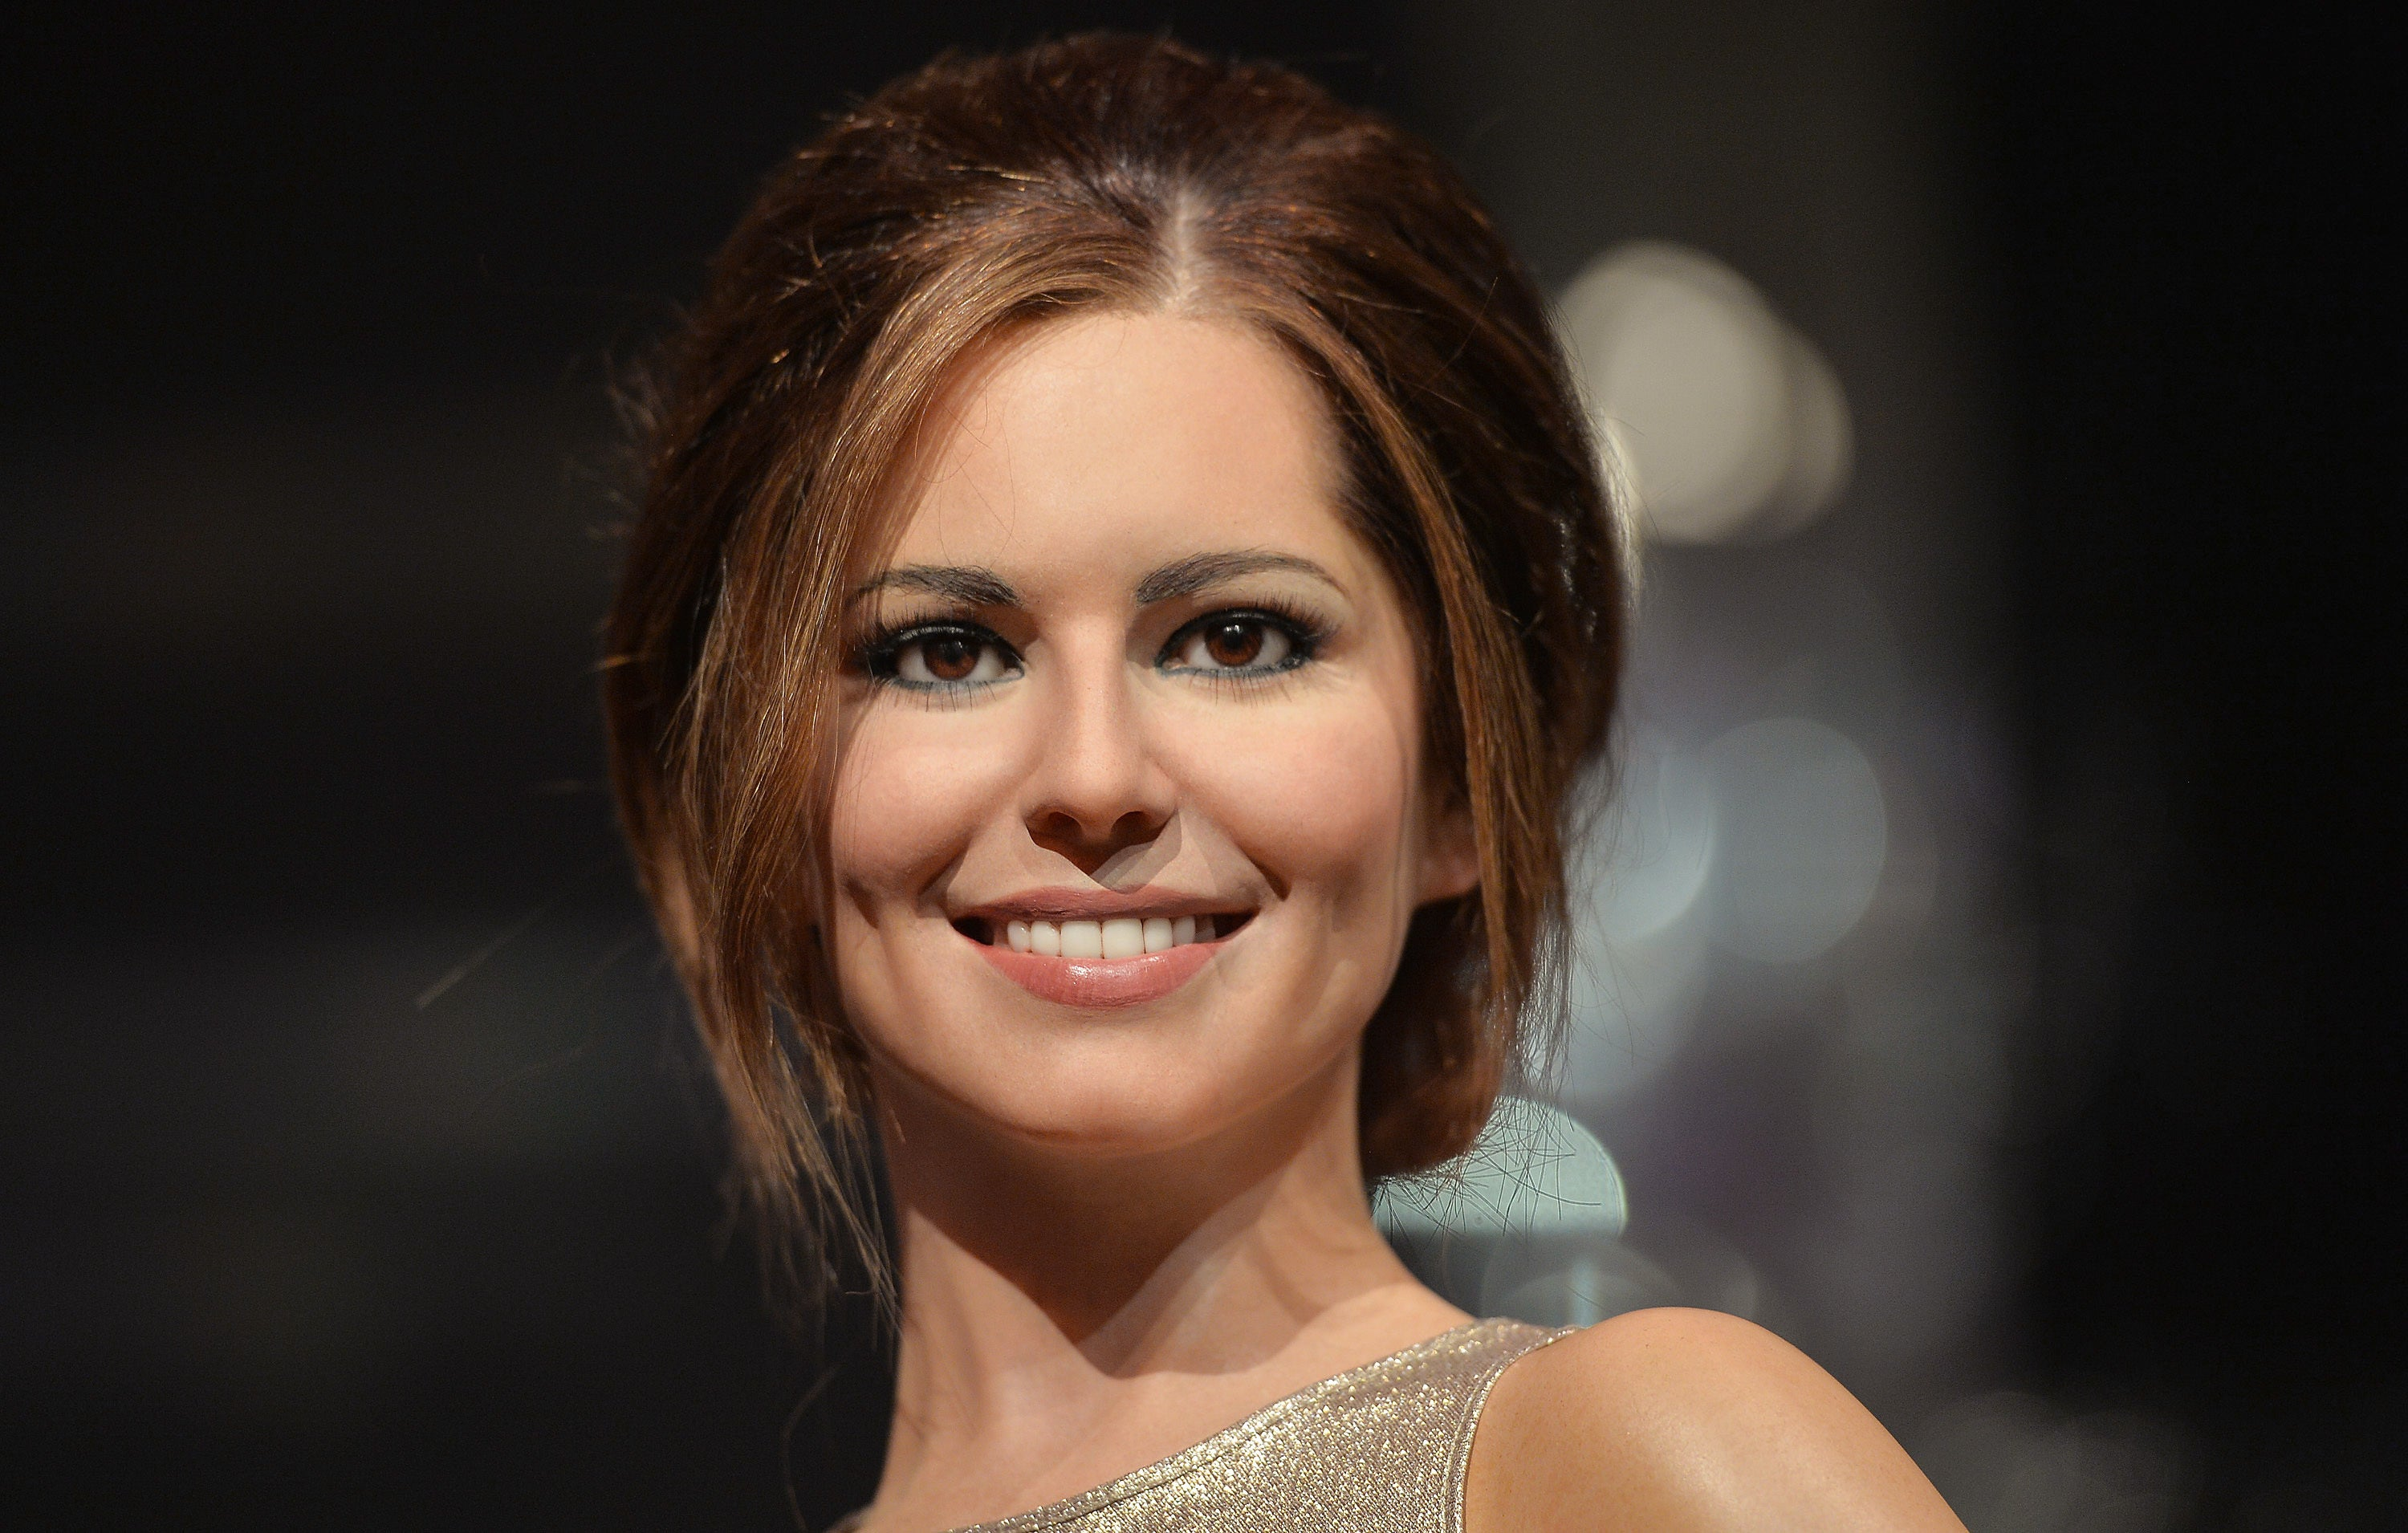 Cheryl Cole: Madame Tussauds could remove tattoos from singer's ... Cheryl Cole